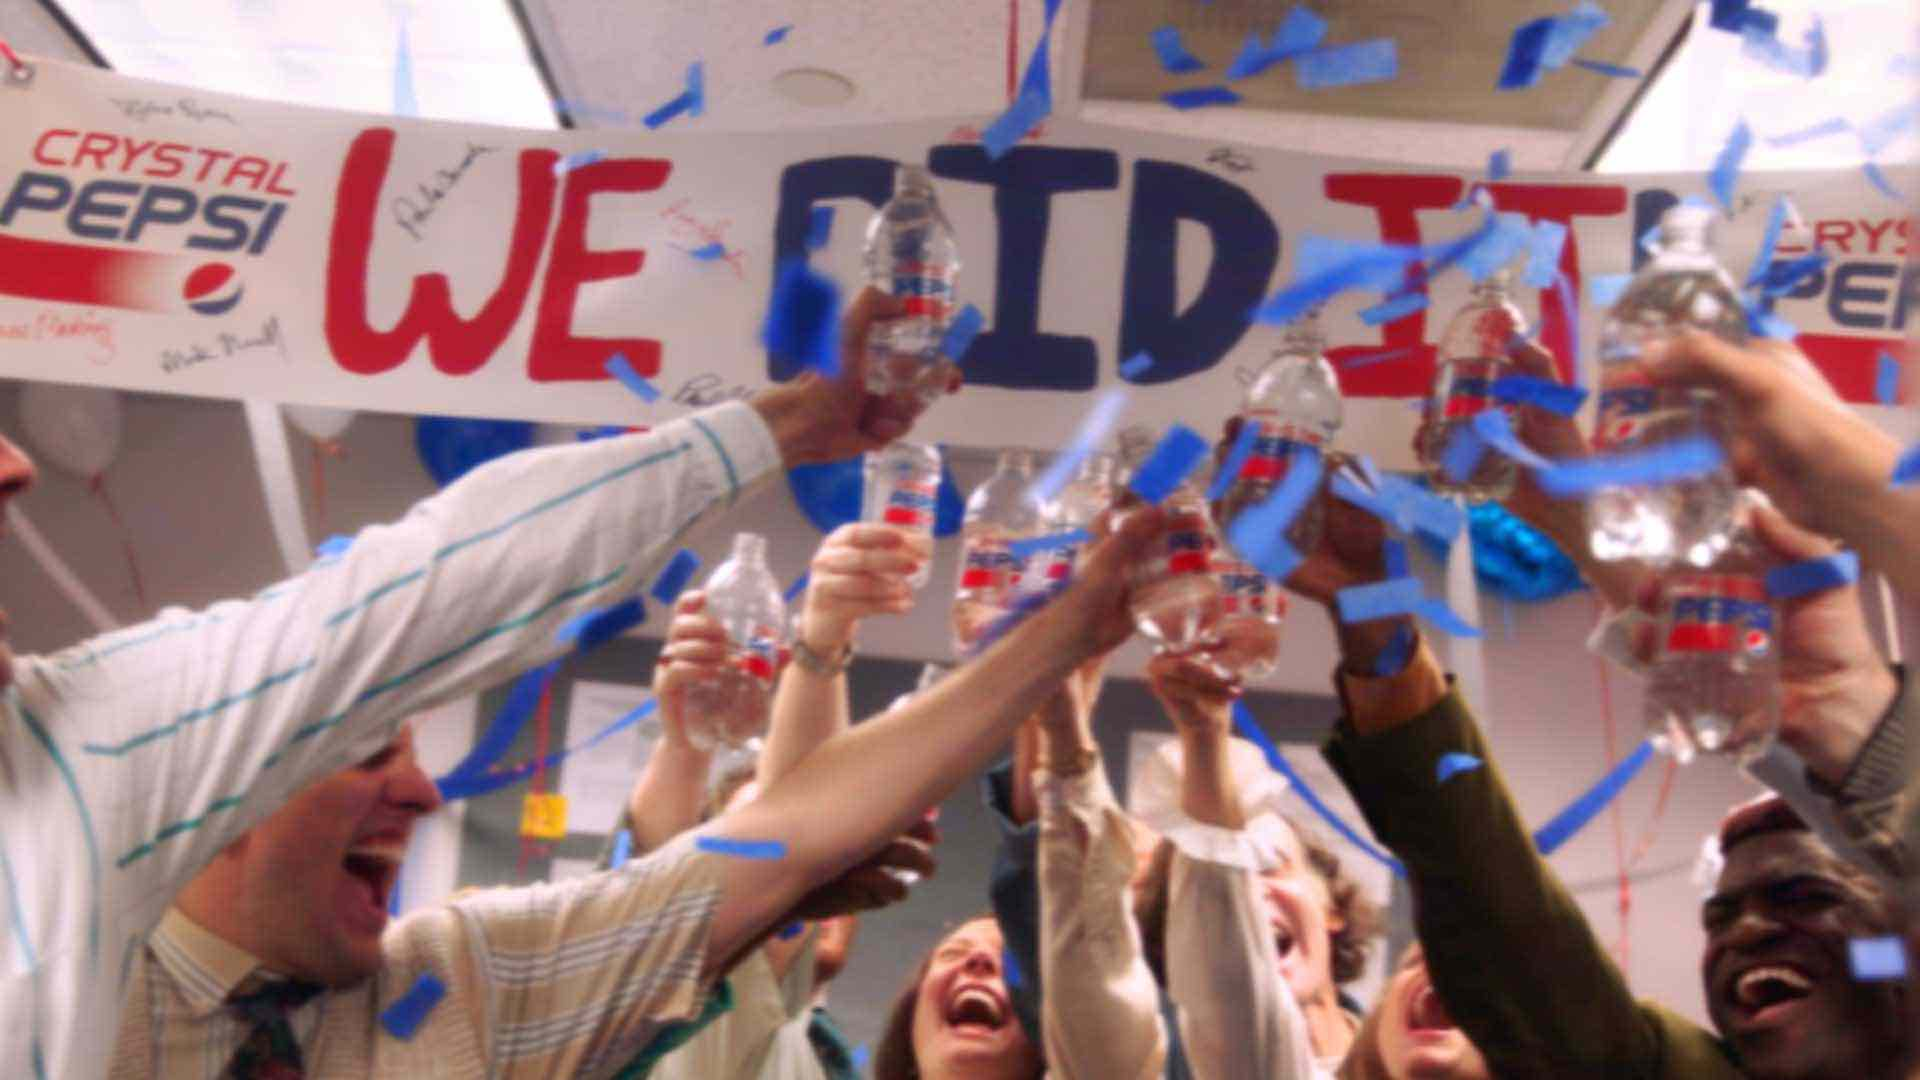 Thumbnail for a commercial for Crystal Pepsi called 'The 92nd Floor' showing people in an office cheering with Crystal Pepsi bottles.